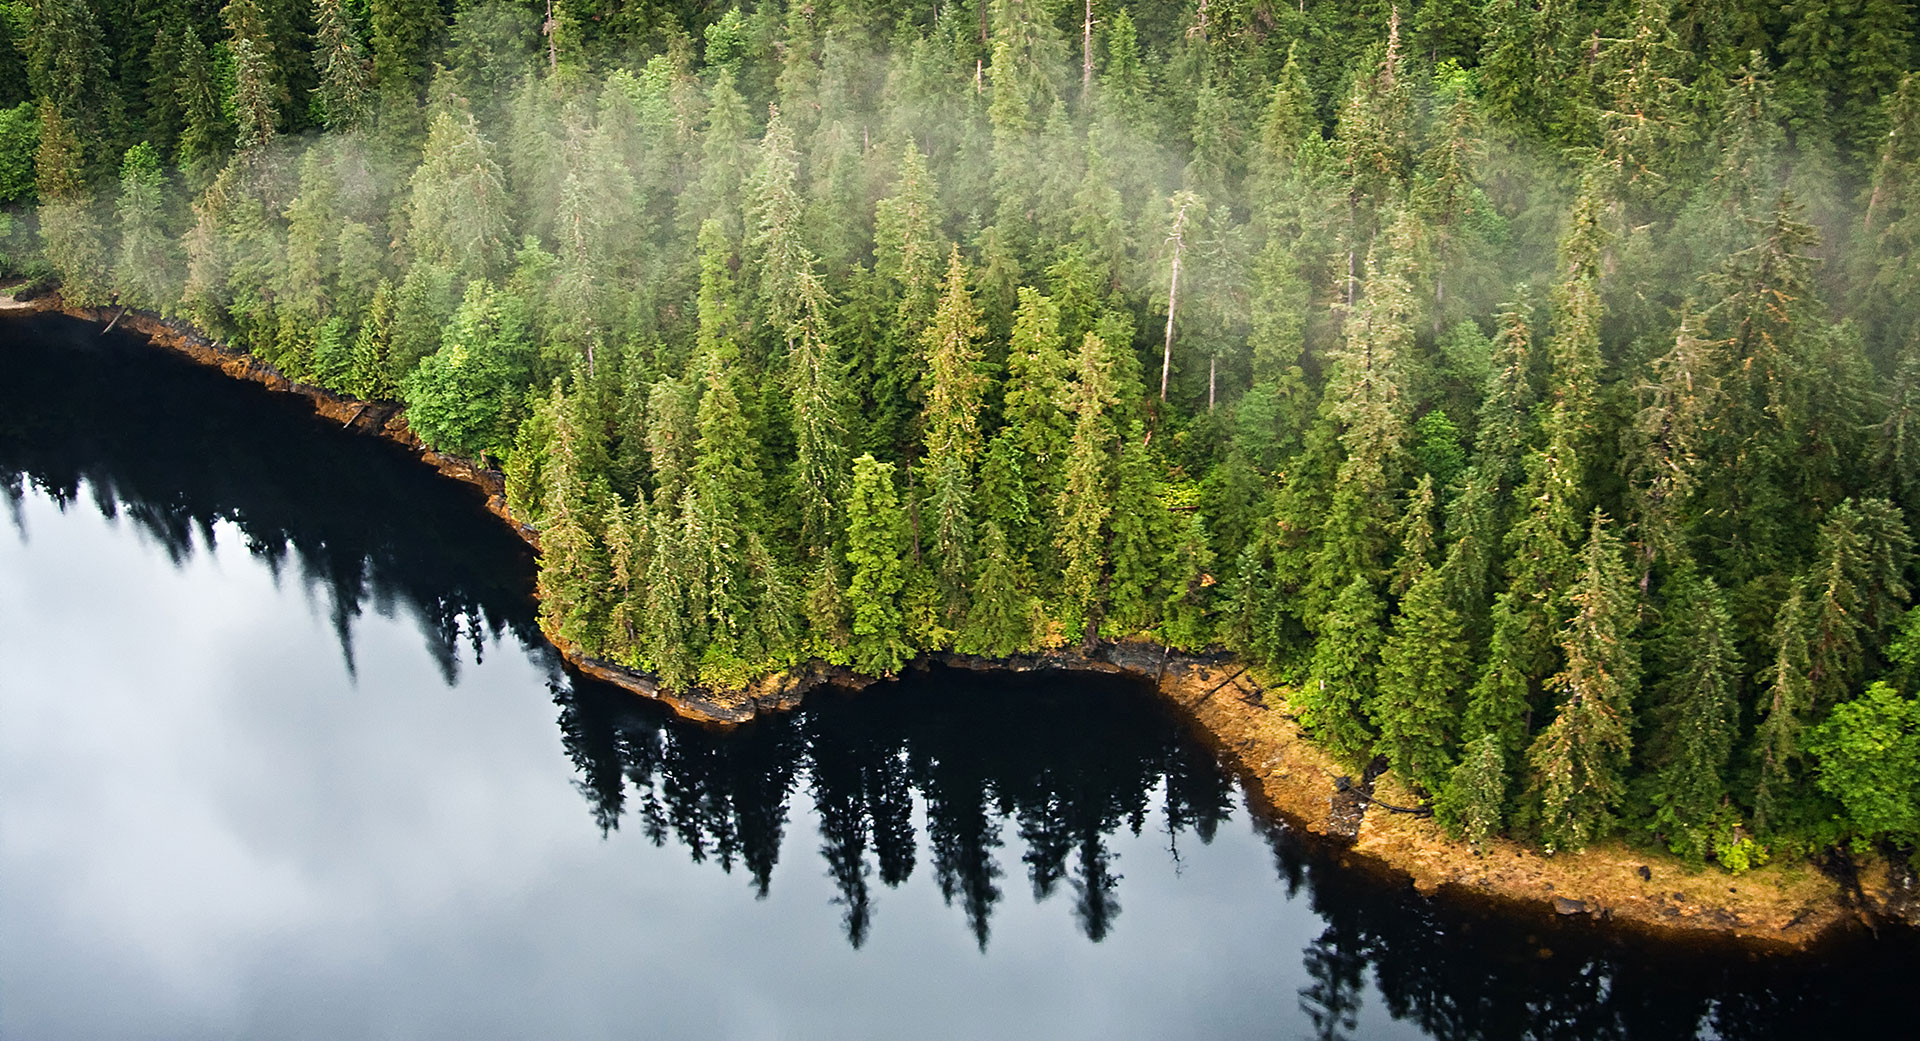 Protecting the world's last few temperate rainforest from deforestation